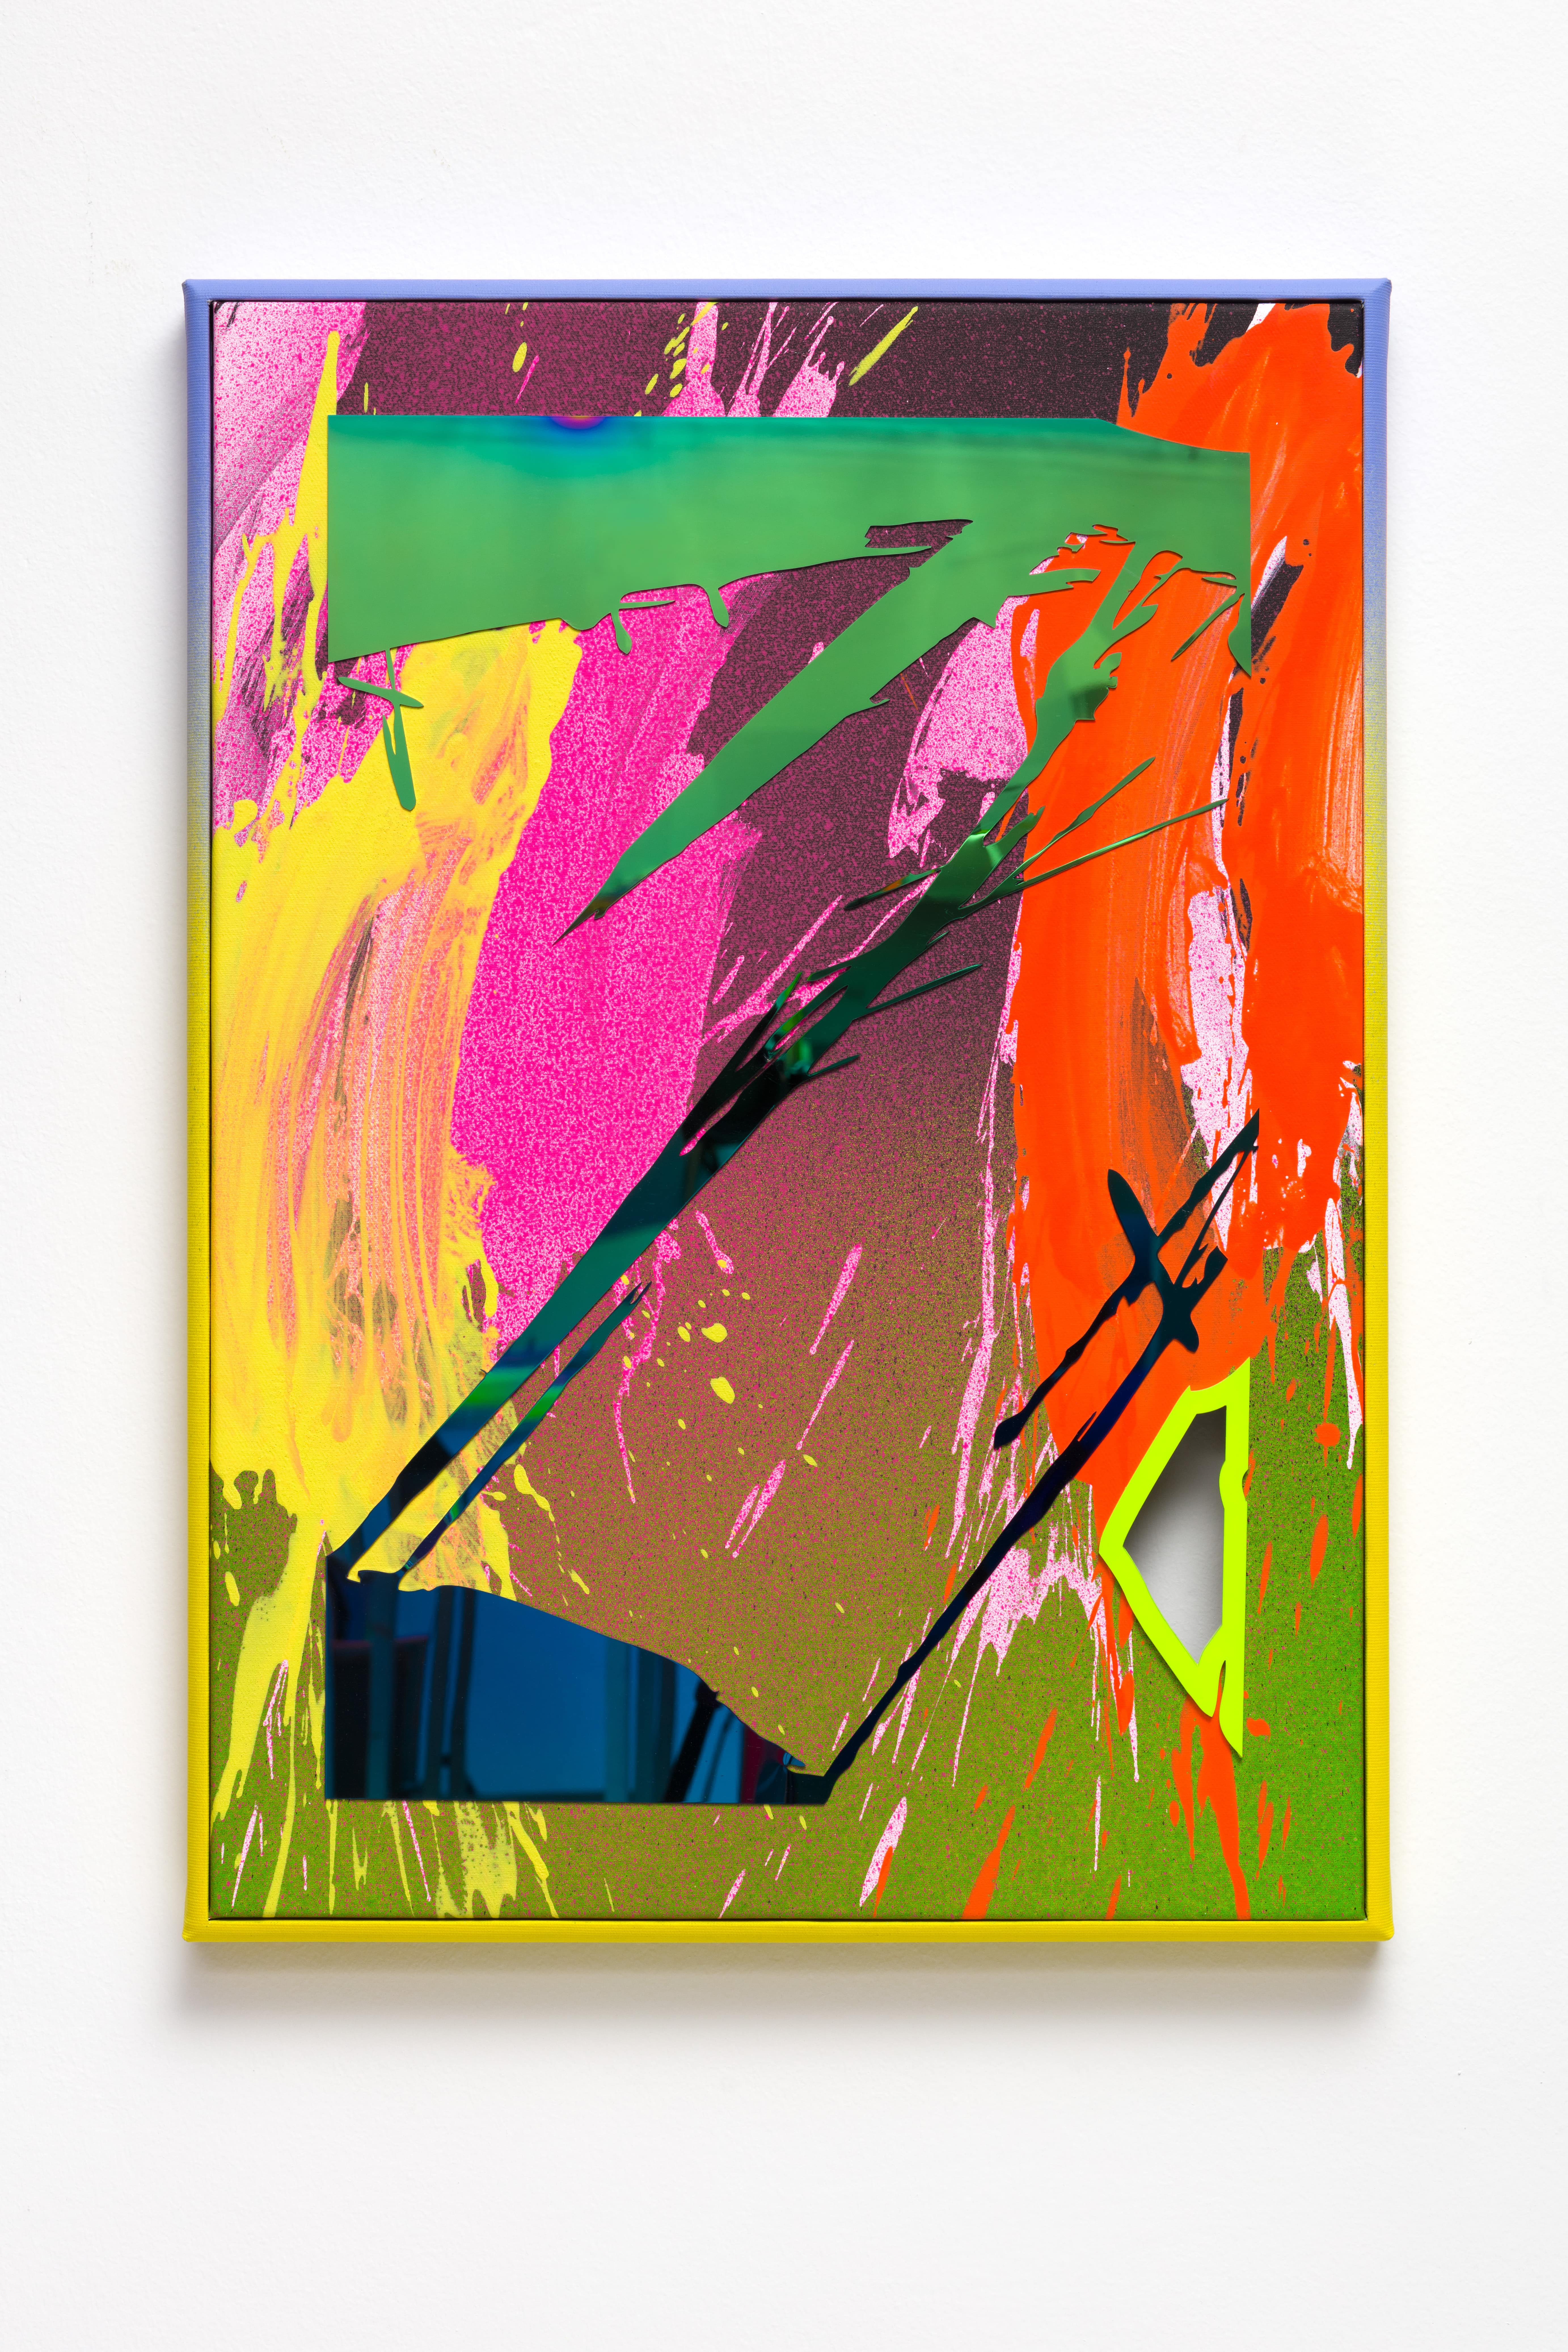 NemesM_Nothing-Without-06_2021_72x52cm_PVD-coated-stainless-steel-powder-coated-stainless-steel-acrylic-canvas-wood-min